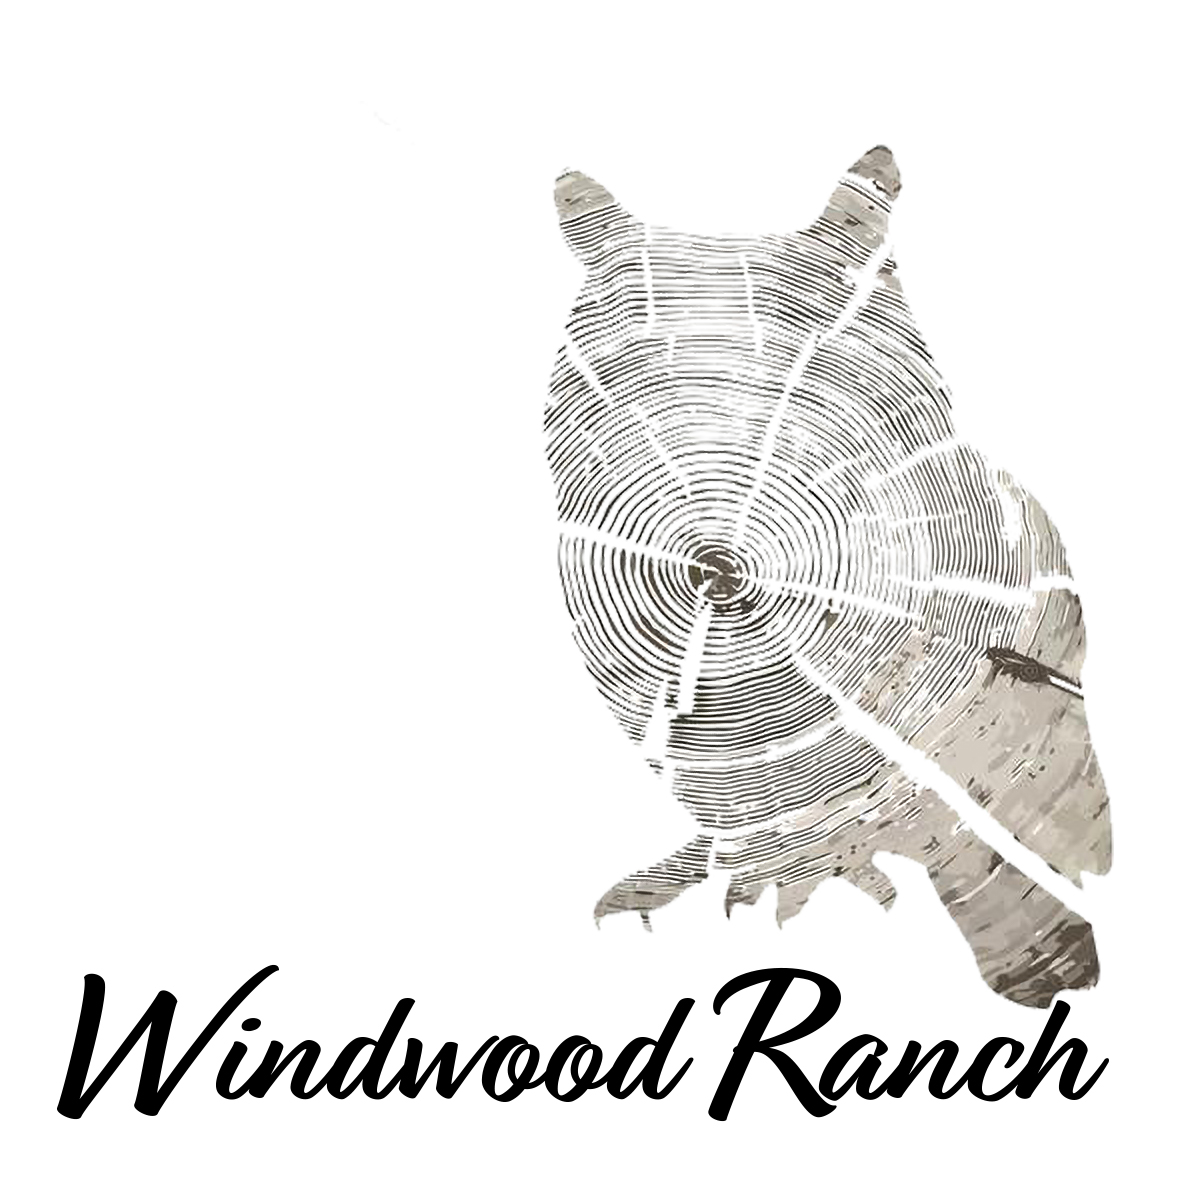 Windwood Ranch